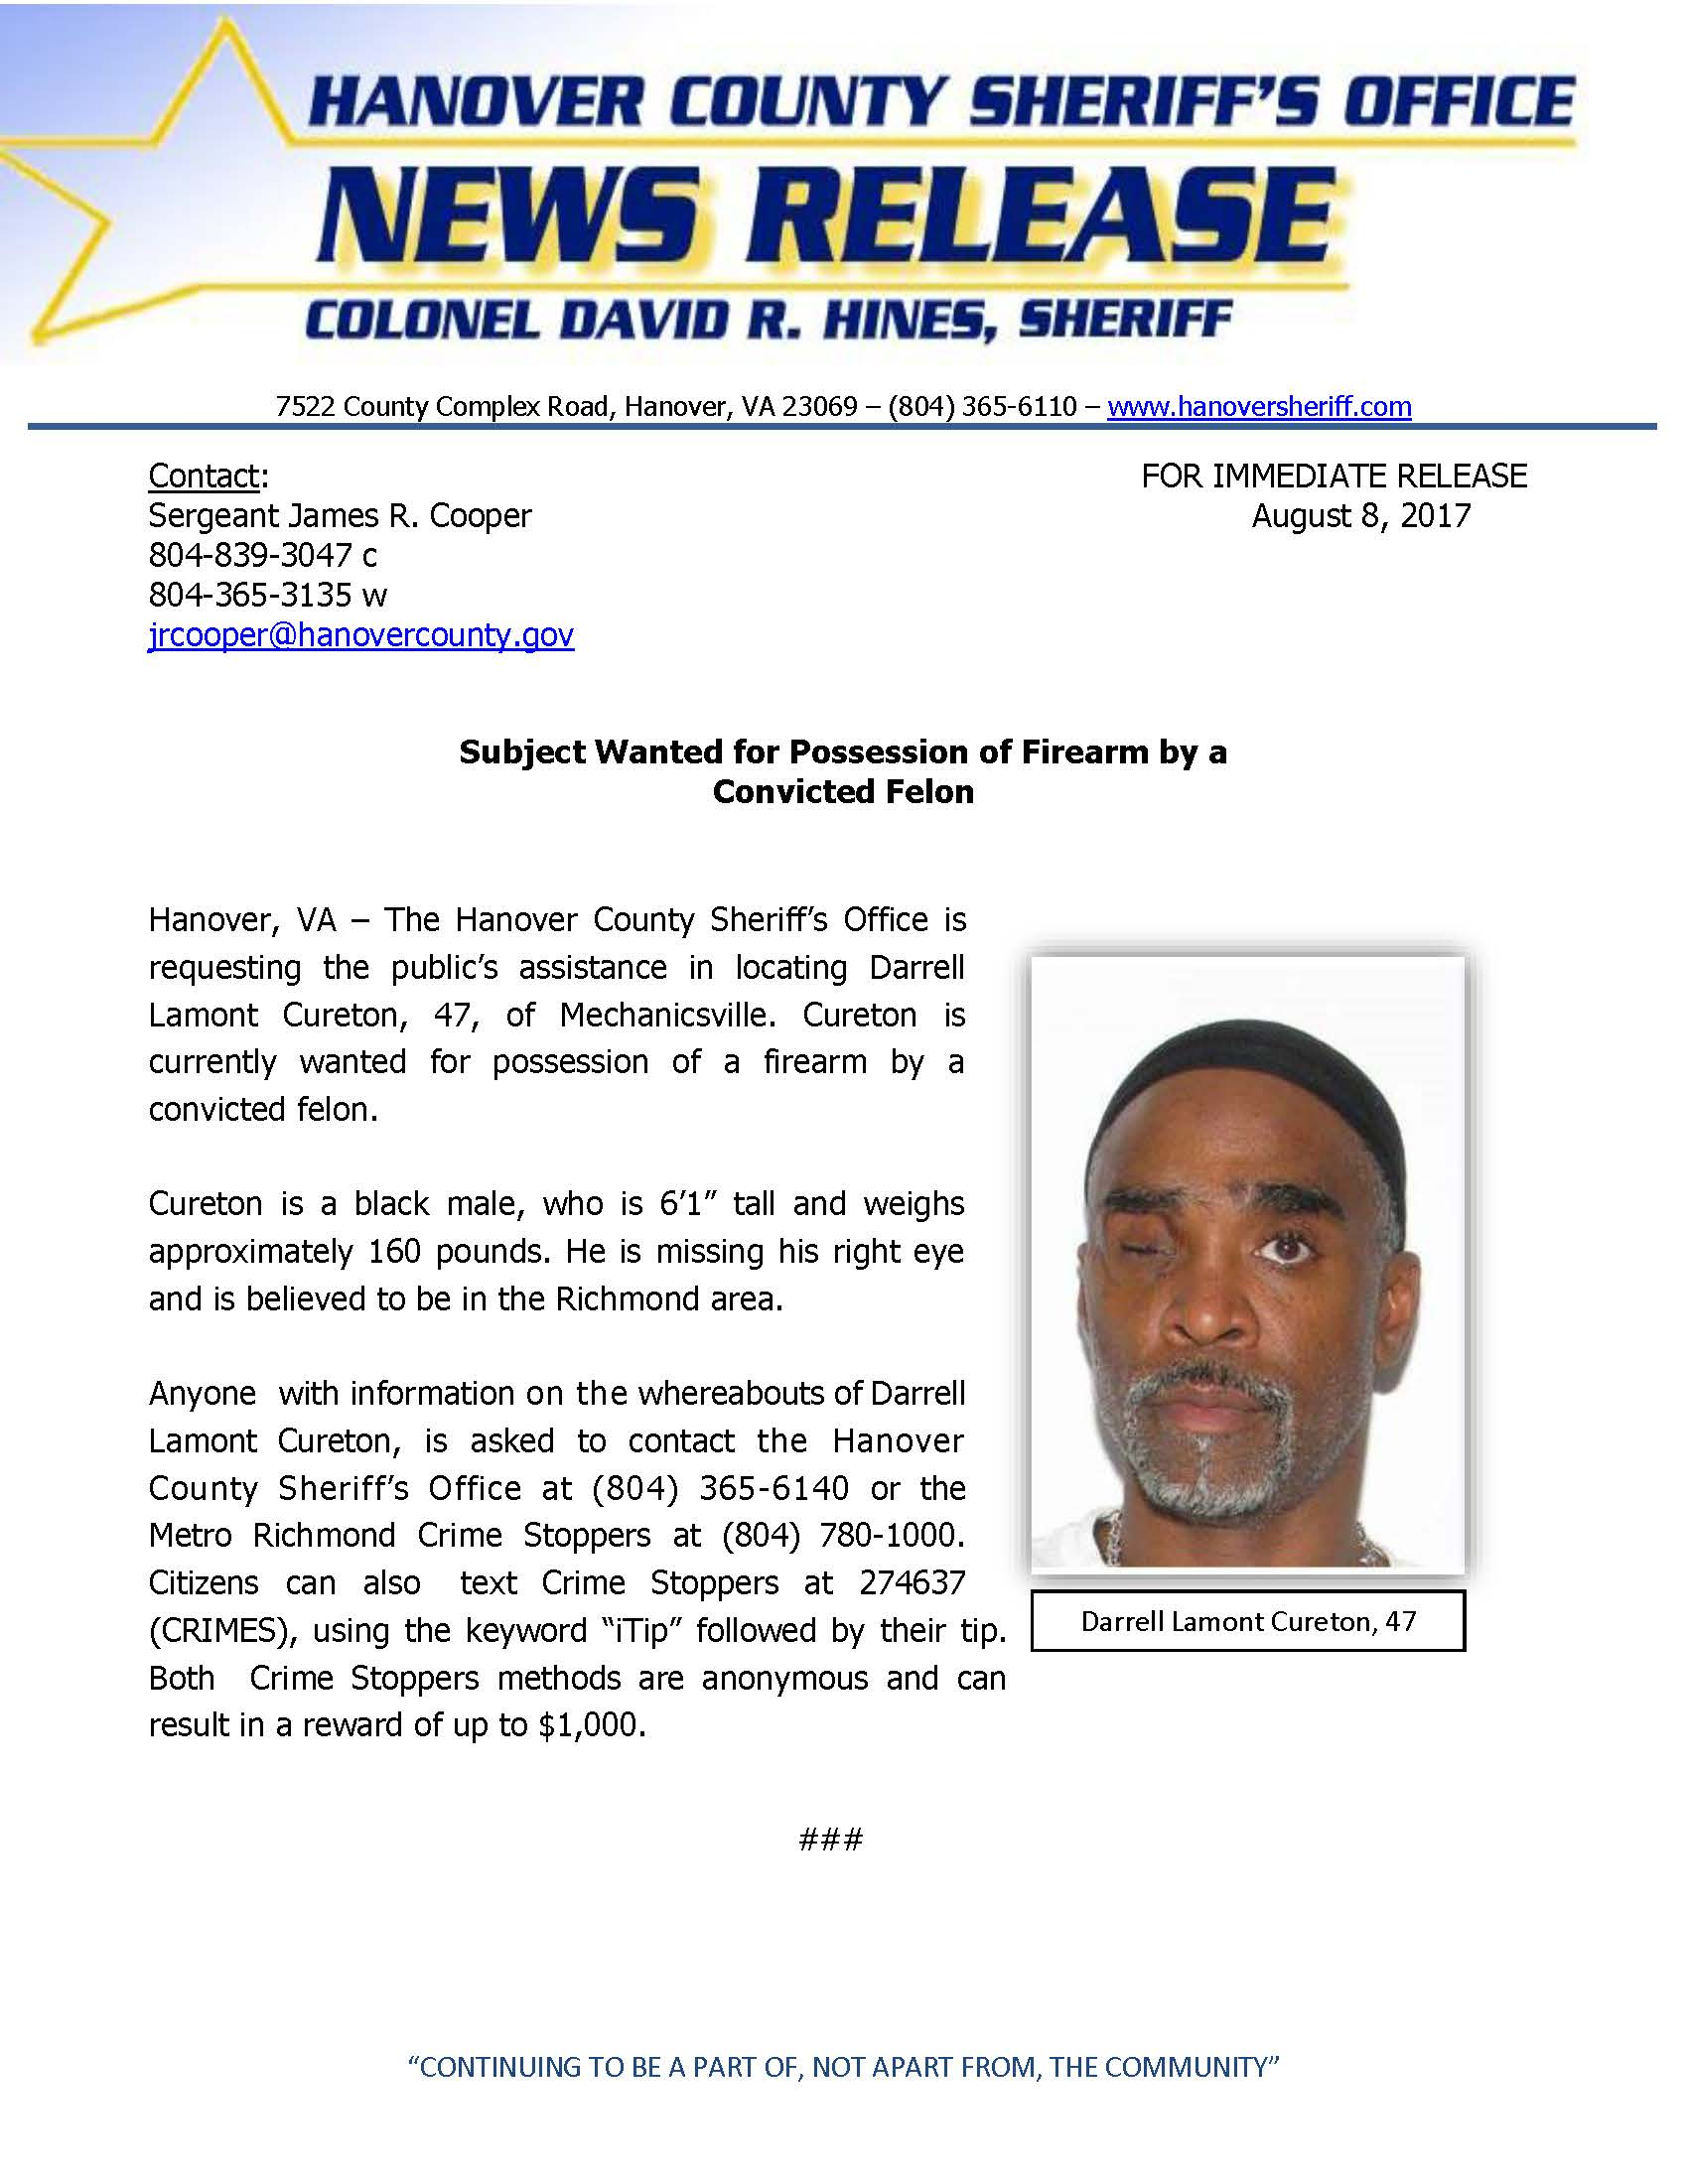 HCSO - Suspect Wanted for Possession of Firearm- August 2017